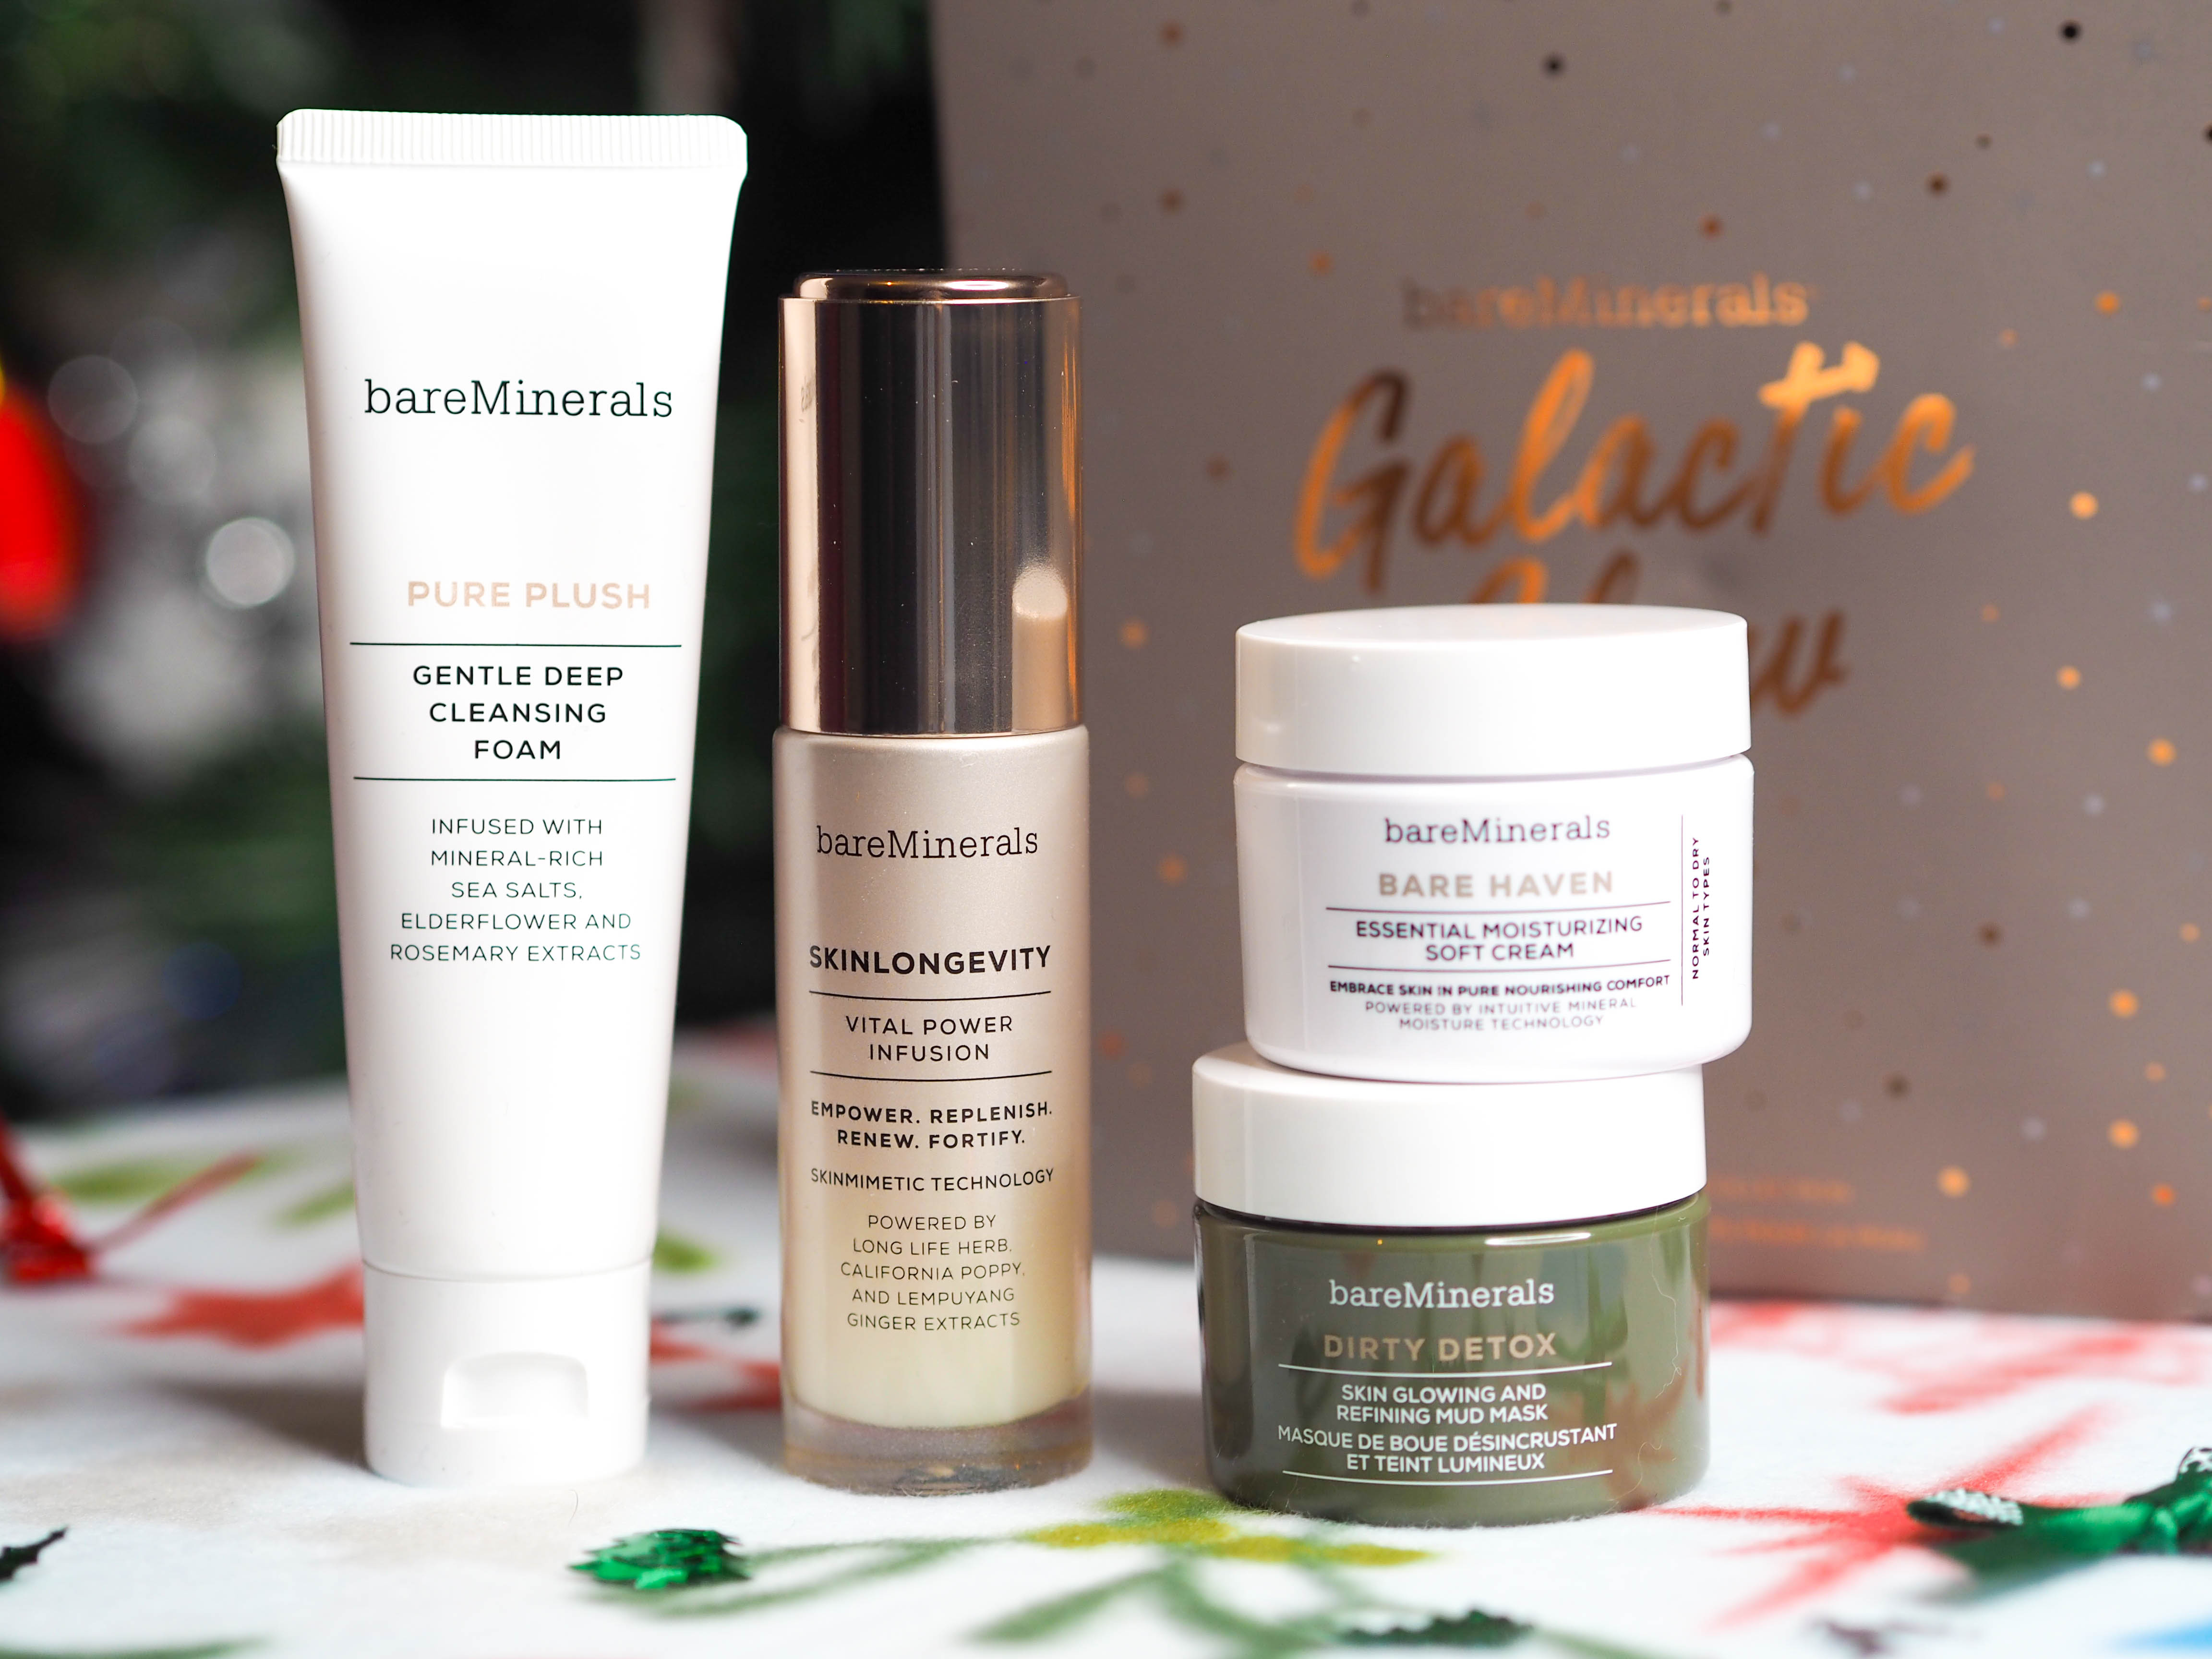 bareMinerals Galactic Glow Kit